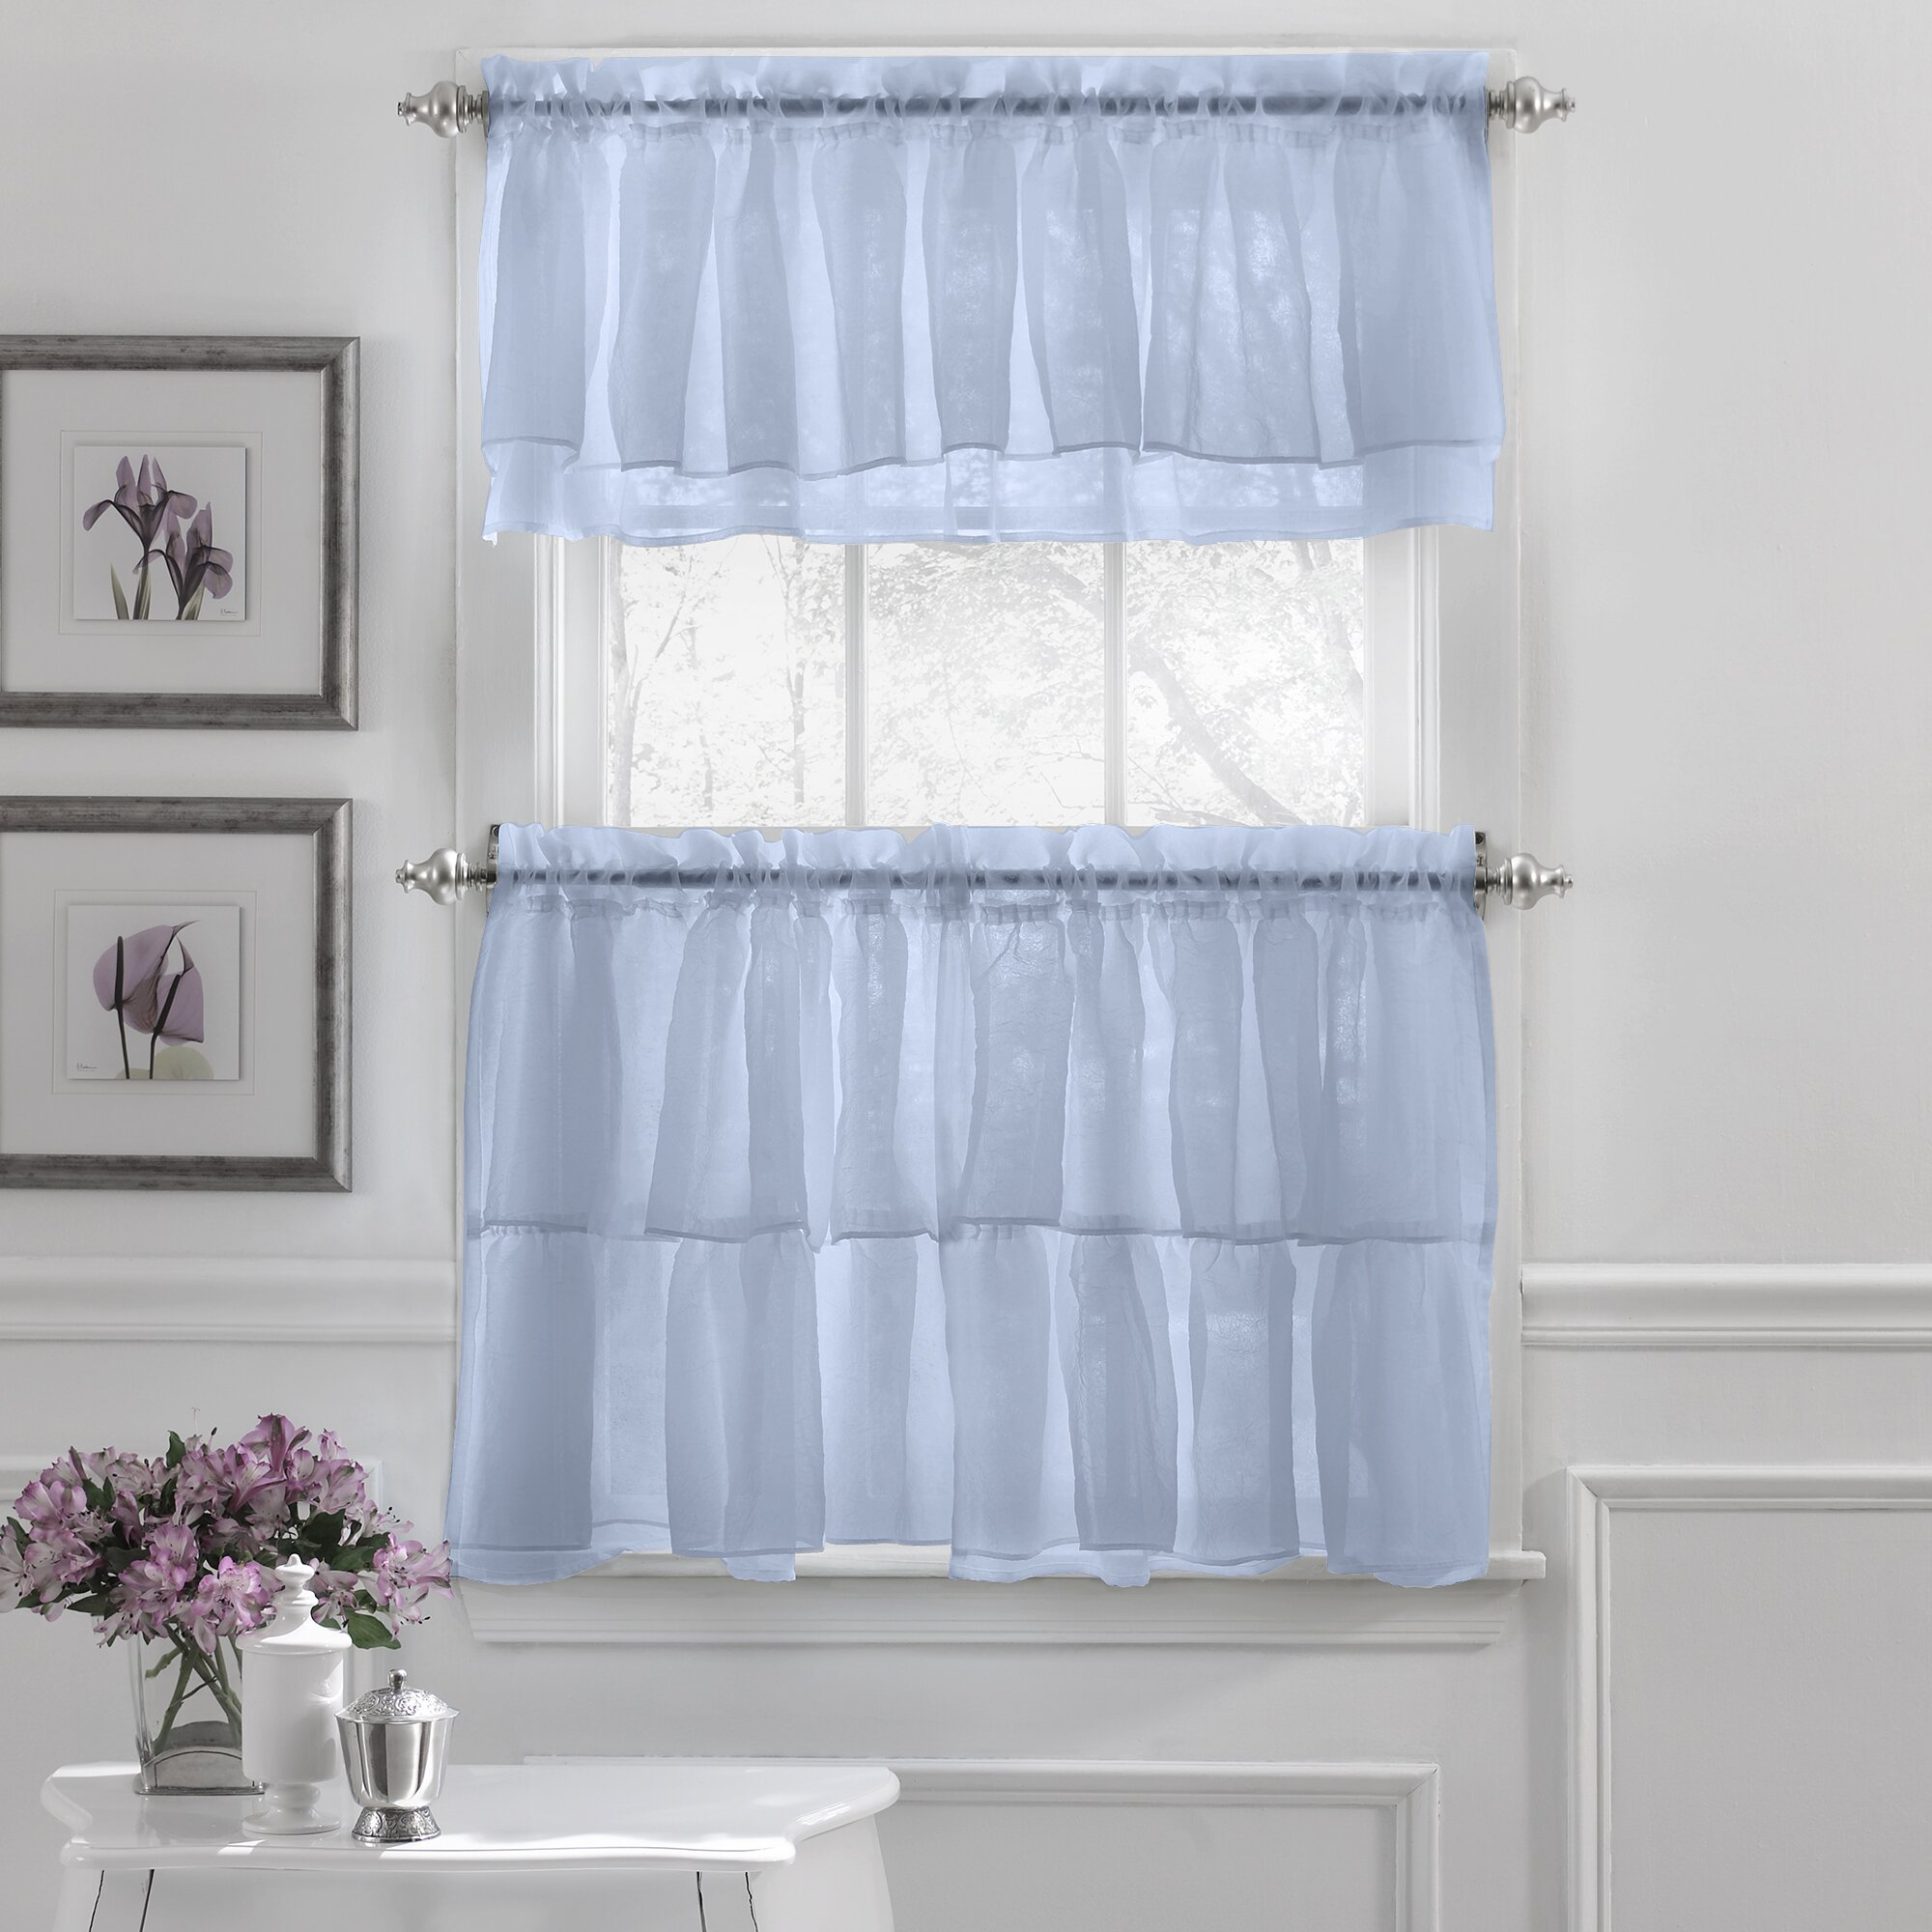 Country ruffled shower curtains - Blue Country Shower Curtains French Country Shower Curtain Sweet Home Collection Elegant Crushed Voile Ruffle